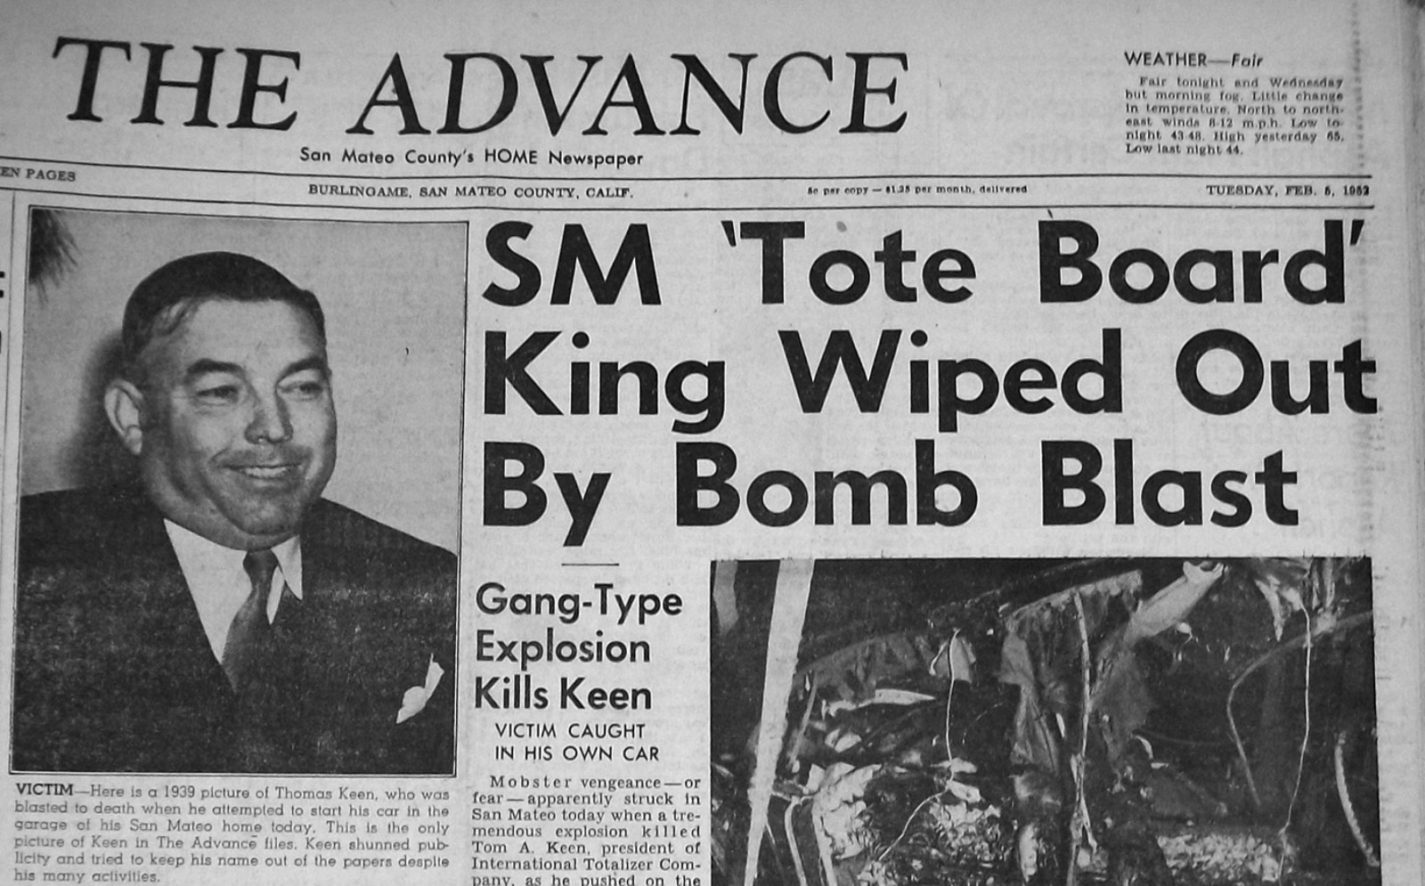 Burlingame Advance newspaper cover from Feb 5, 1952 with headline SM 'Tote Board' King Wiped Out by Bomb Blast